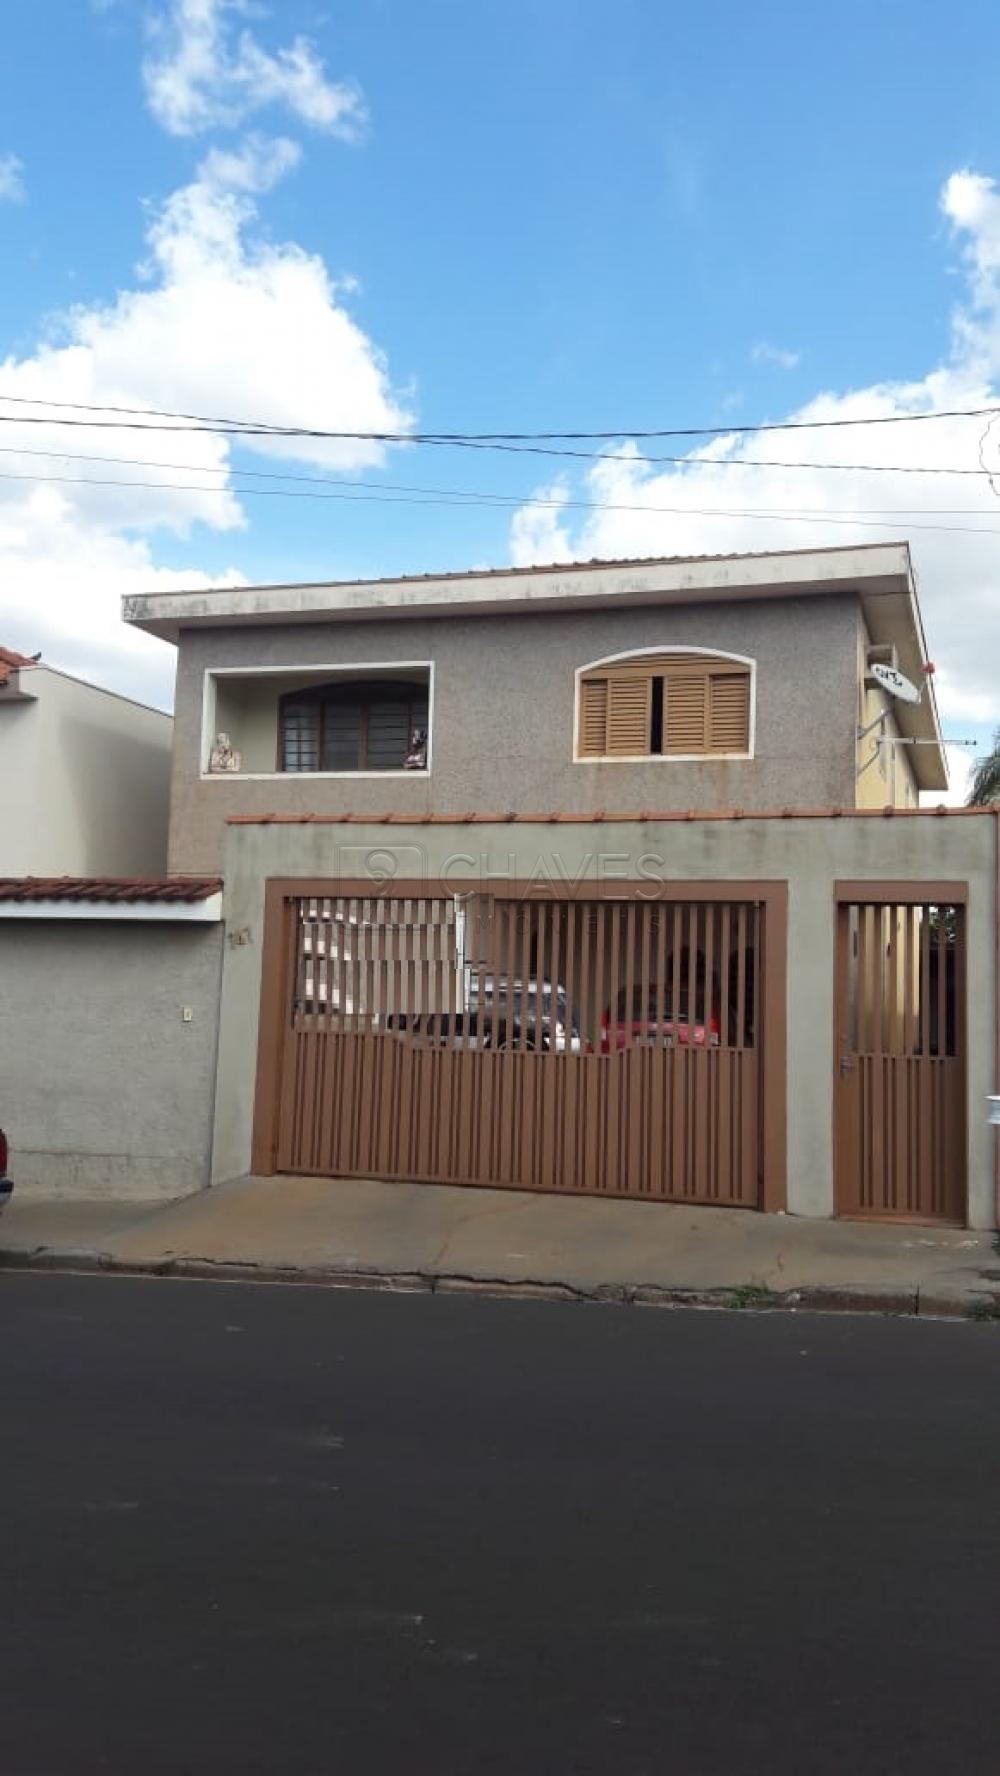 Ribeirao Preto Casa Venda R$600.000,00 5 Dormitorios 1 Suite Area do terreno 500.00m2 Area construida 220.00m2